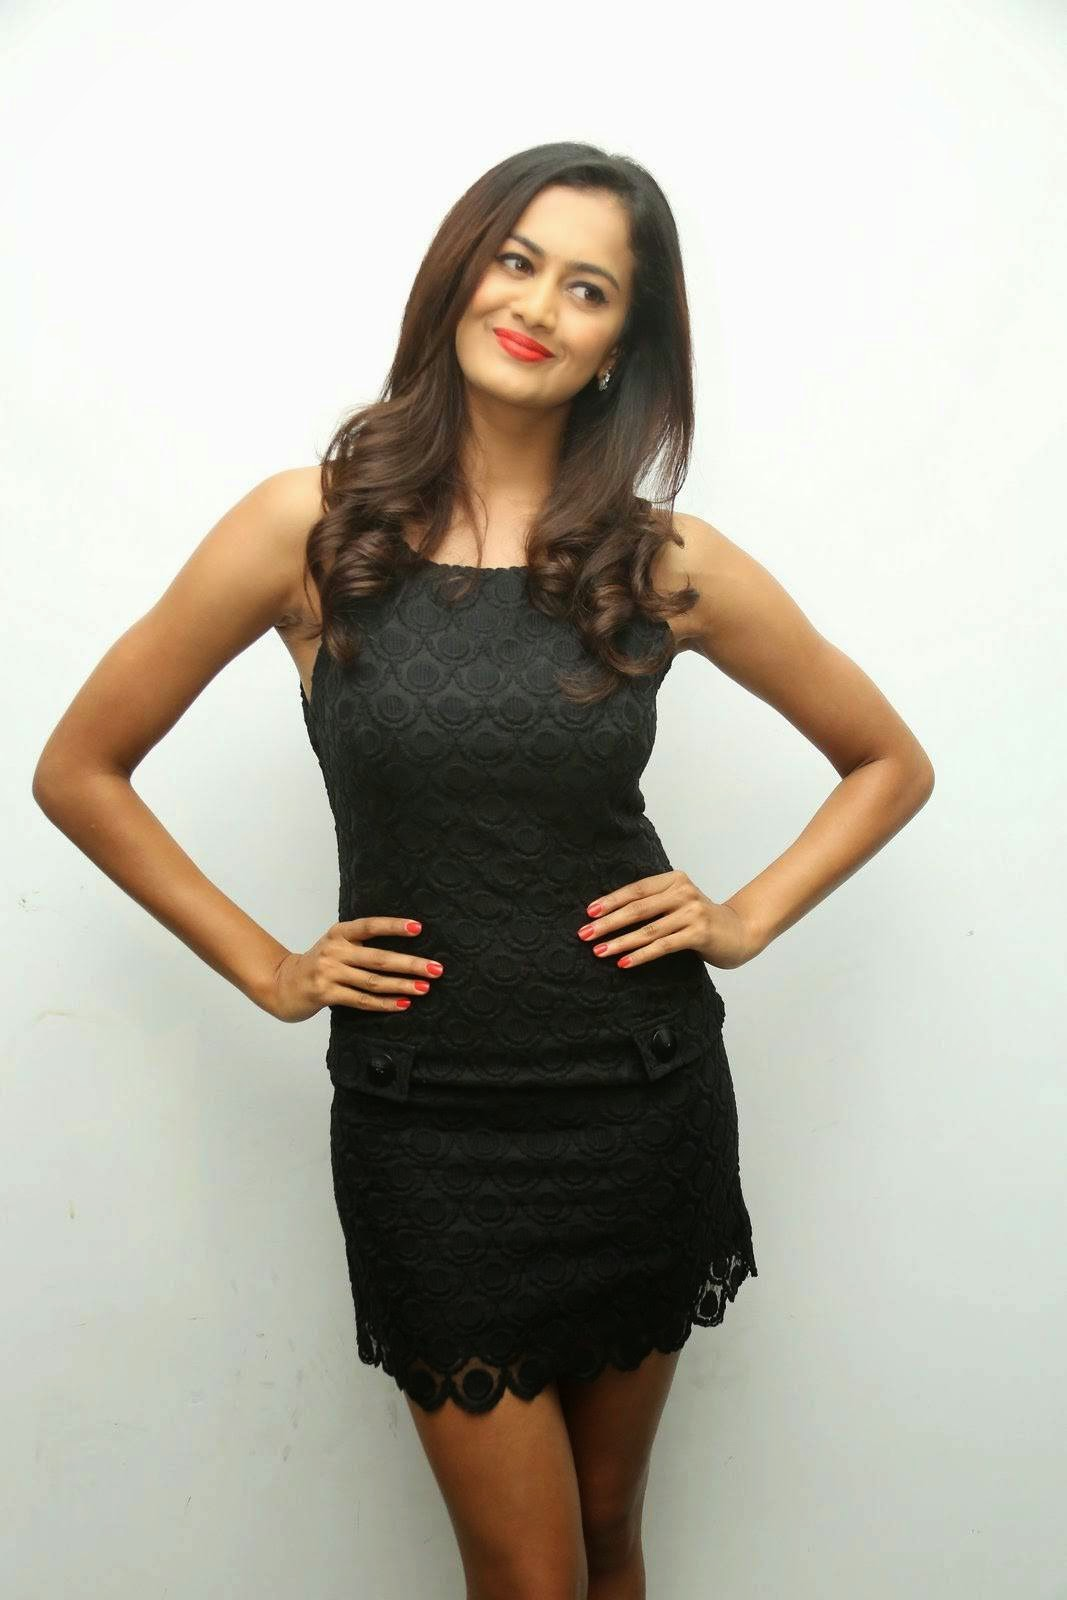 Actress Subra Aiyappa Wallpapers, Shubra Aiyappa Sexy Hot Figure images in Black Dress